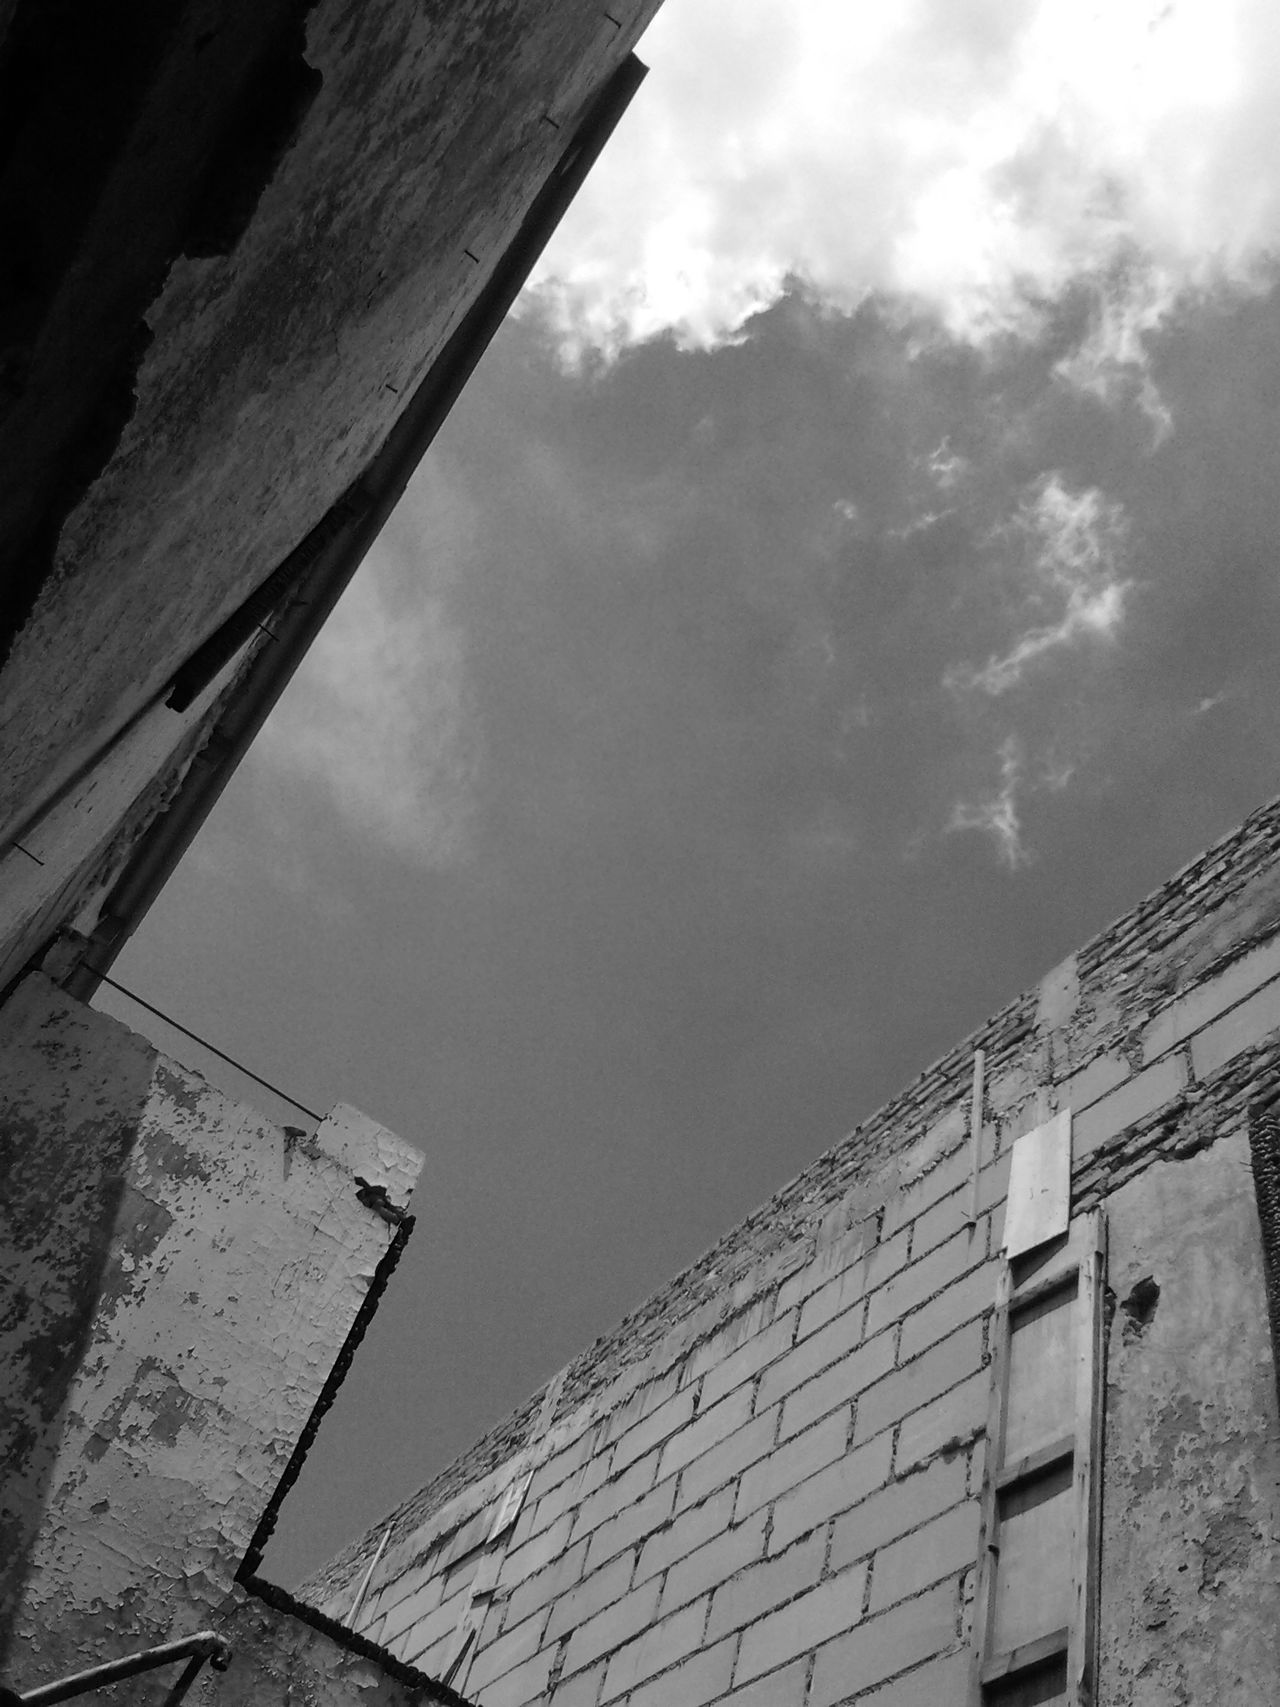 Architecture Blackandwhite Blackandwhite Photography Building Exterior Built Structure Cloud - Sky Day Low Angle View Nature No People Outdoors Roof Sky Wall Wall - Building Feature